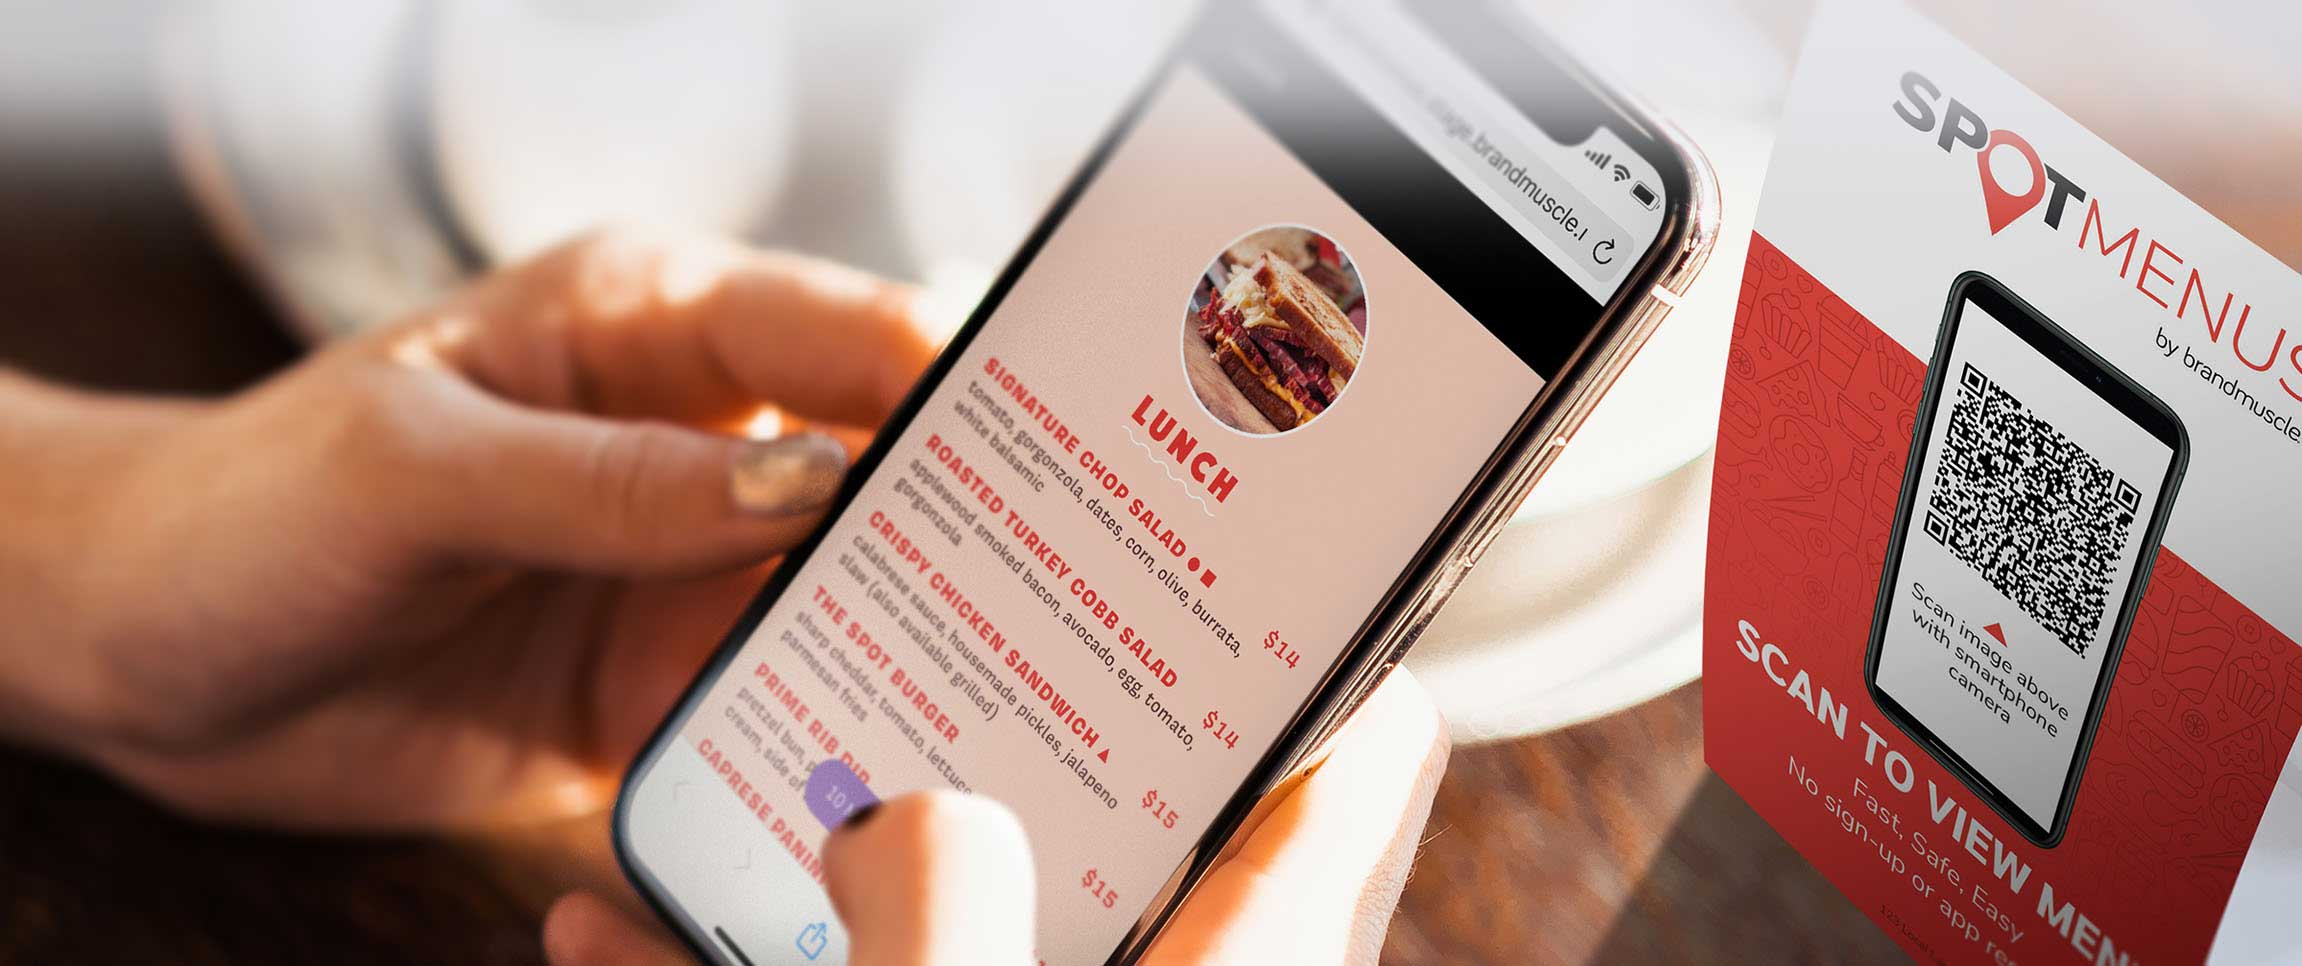 SpotMenus by BrandMuscle